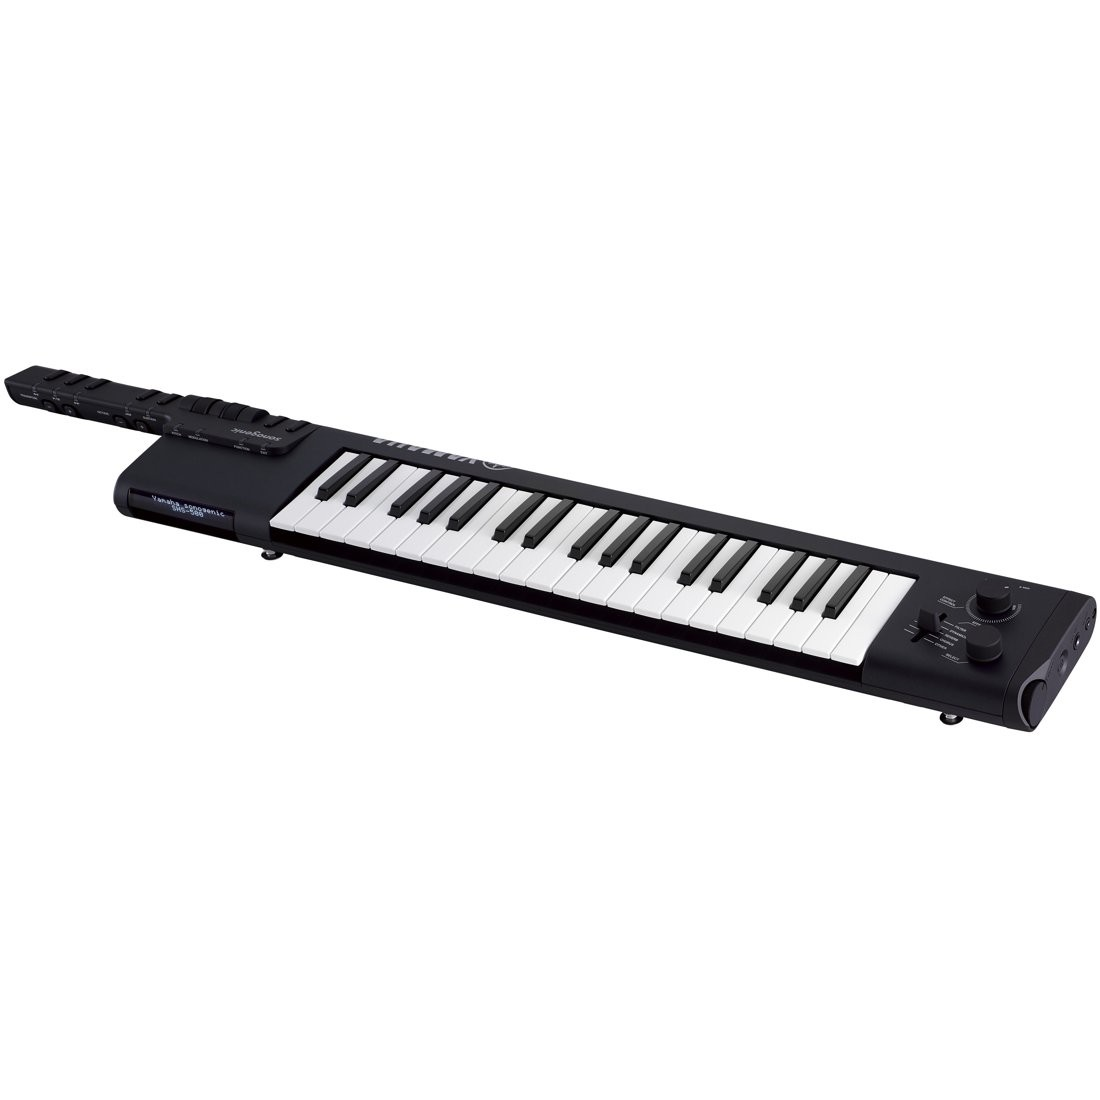 YAMAHA SONOGENIC SHS-500 BLACK - KEYTAR KEYBOARD GUITAR BLUETOOTH